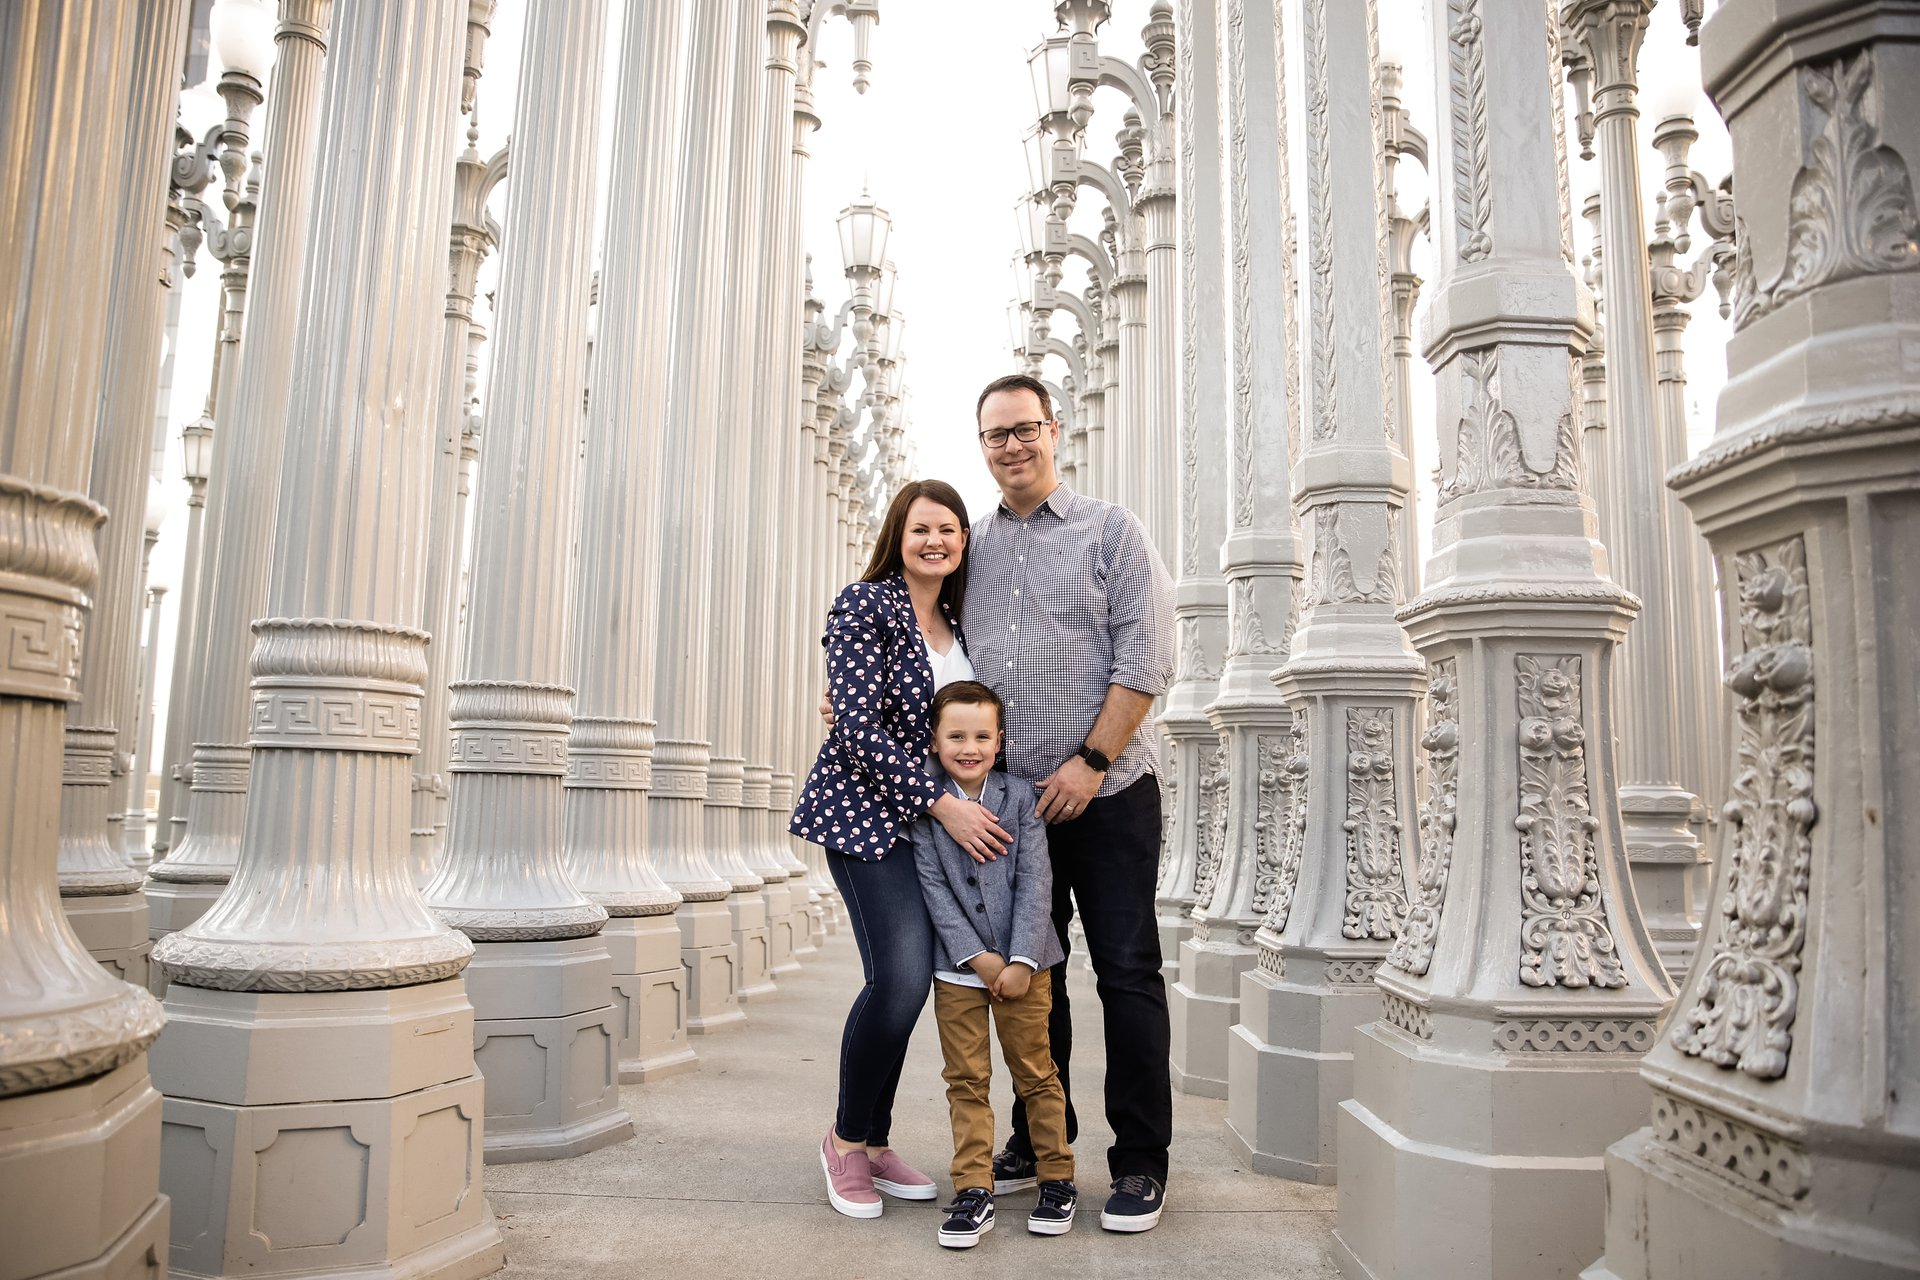 Flytographer Travel Story - The Flemings in LA